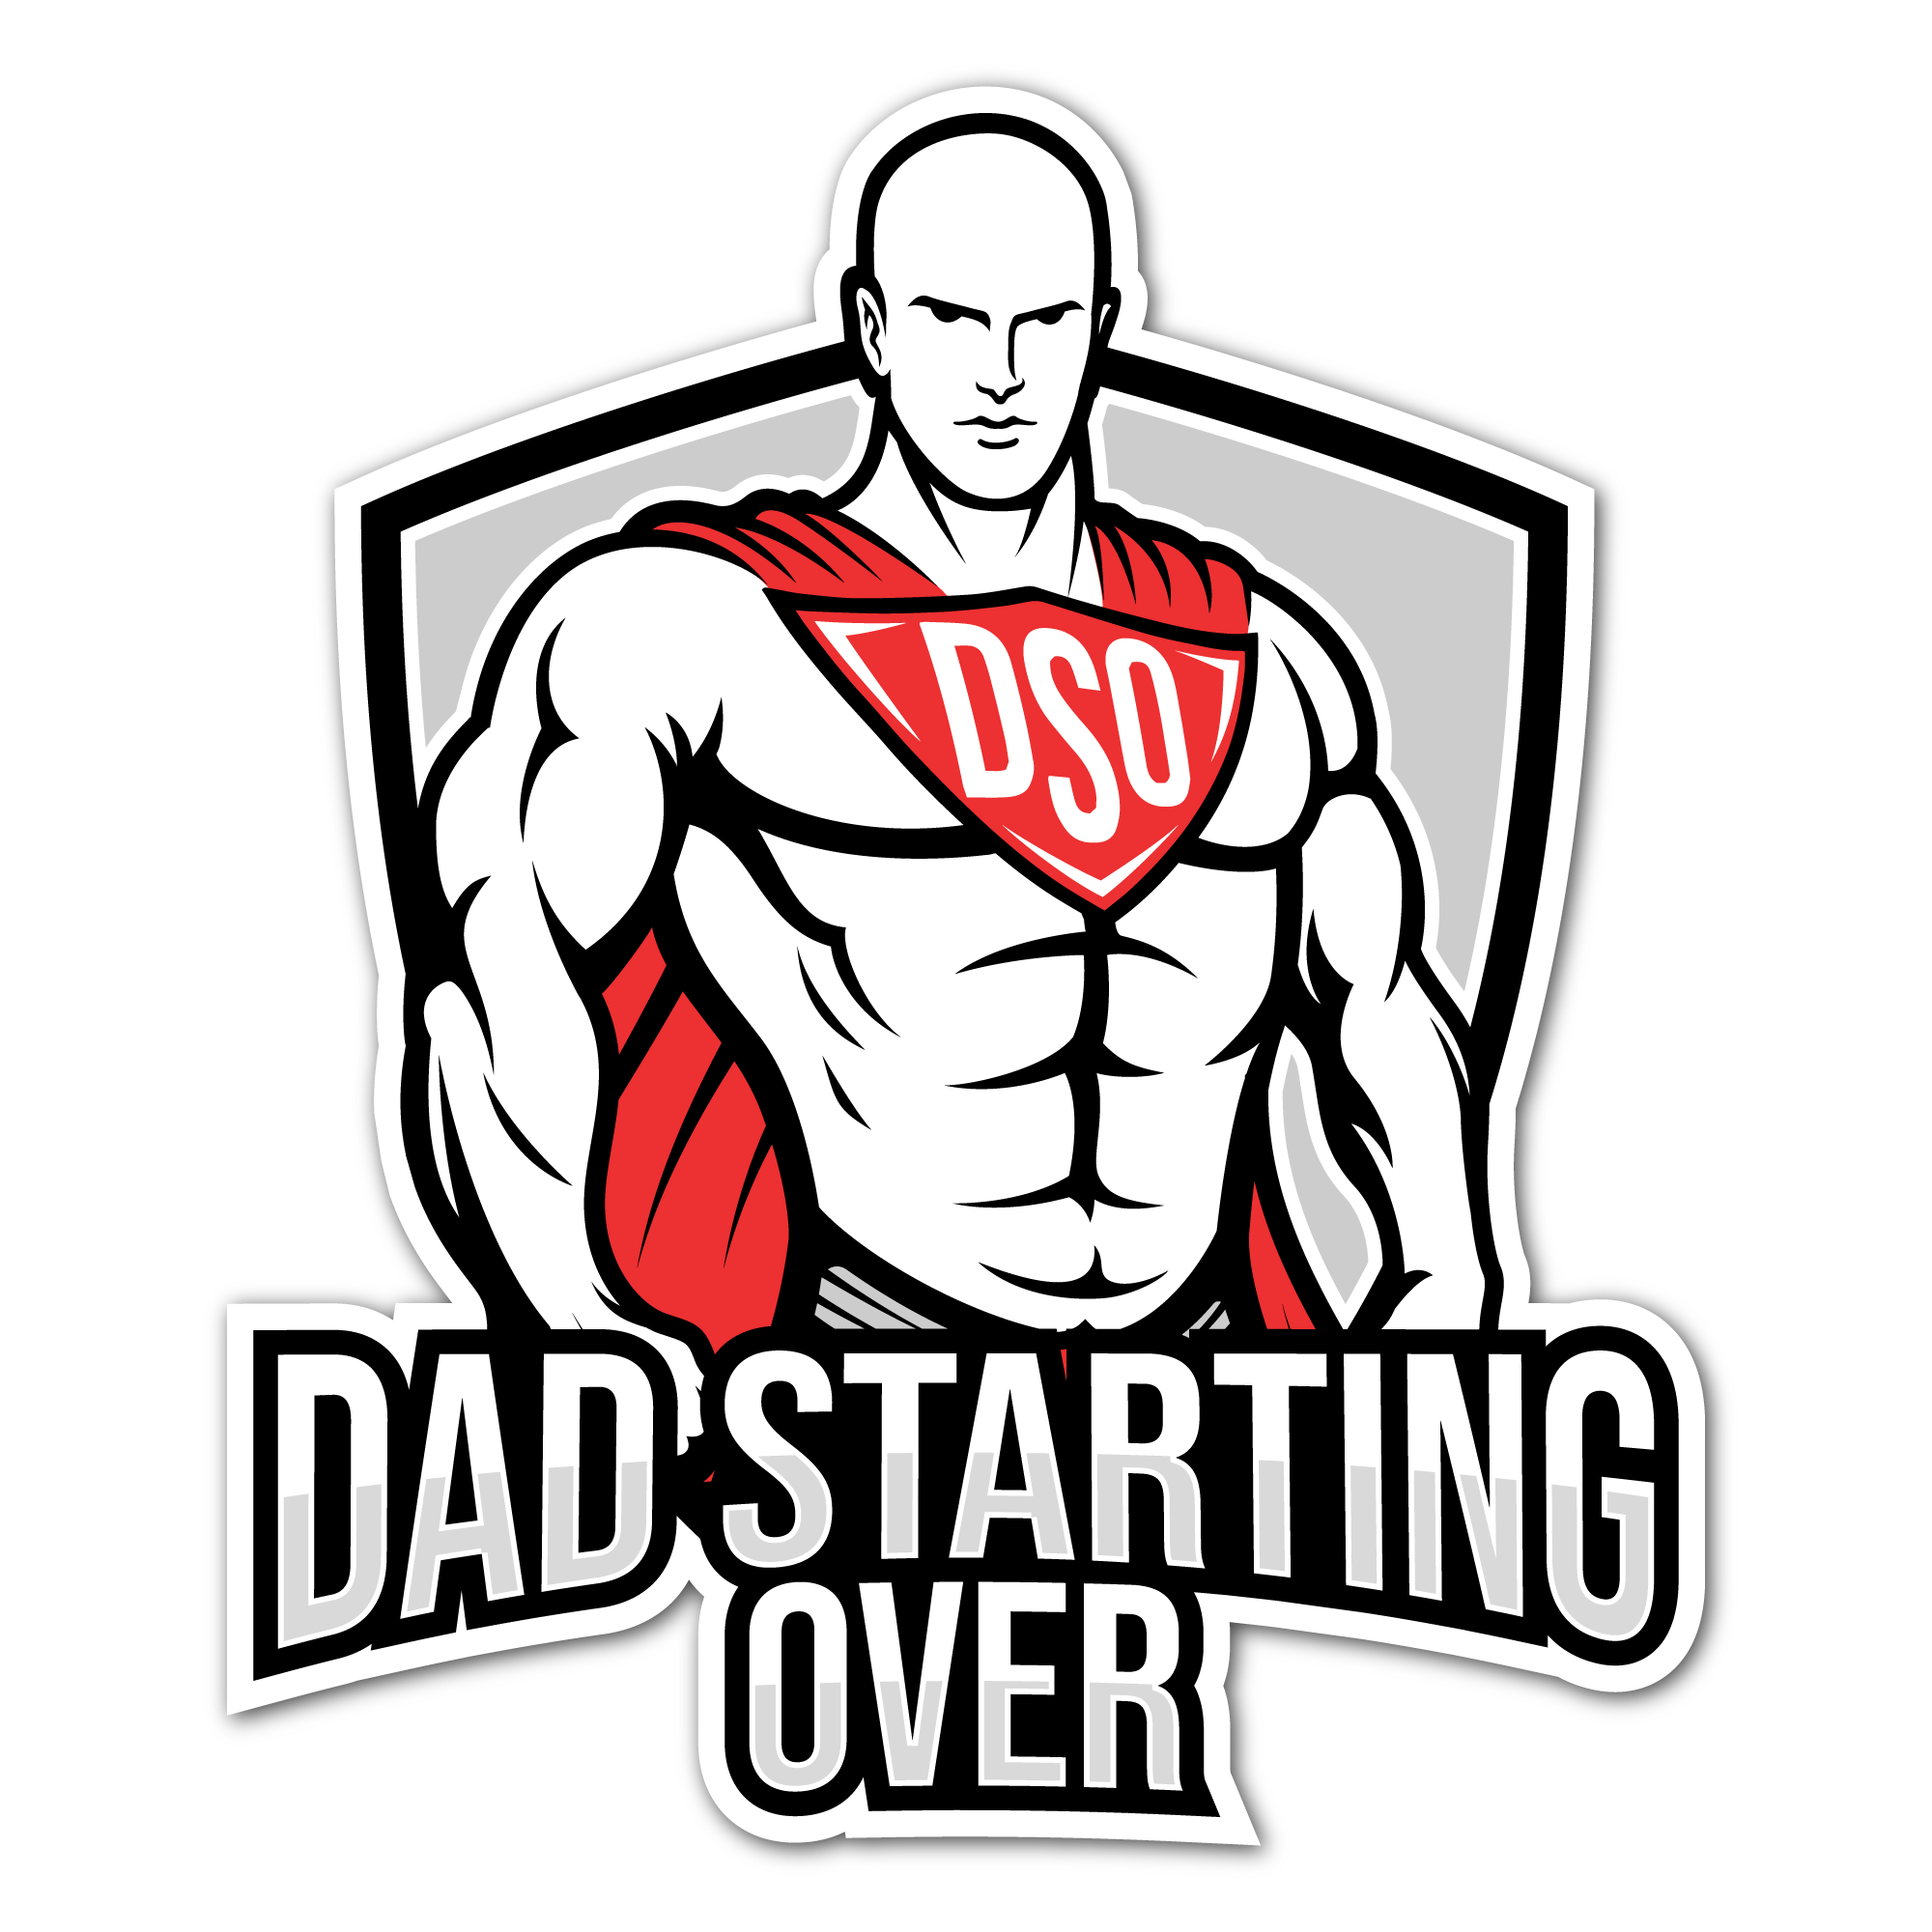 Dad Starting Over